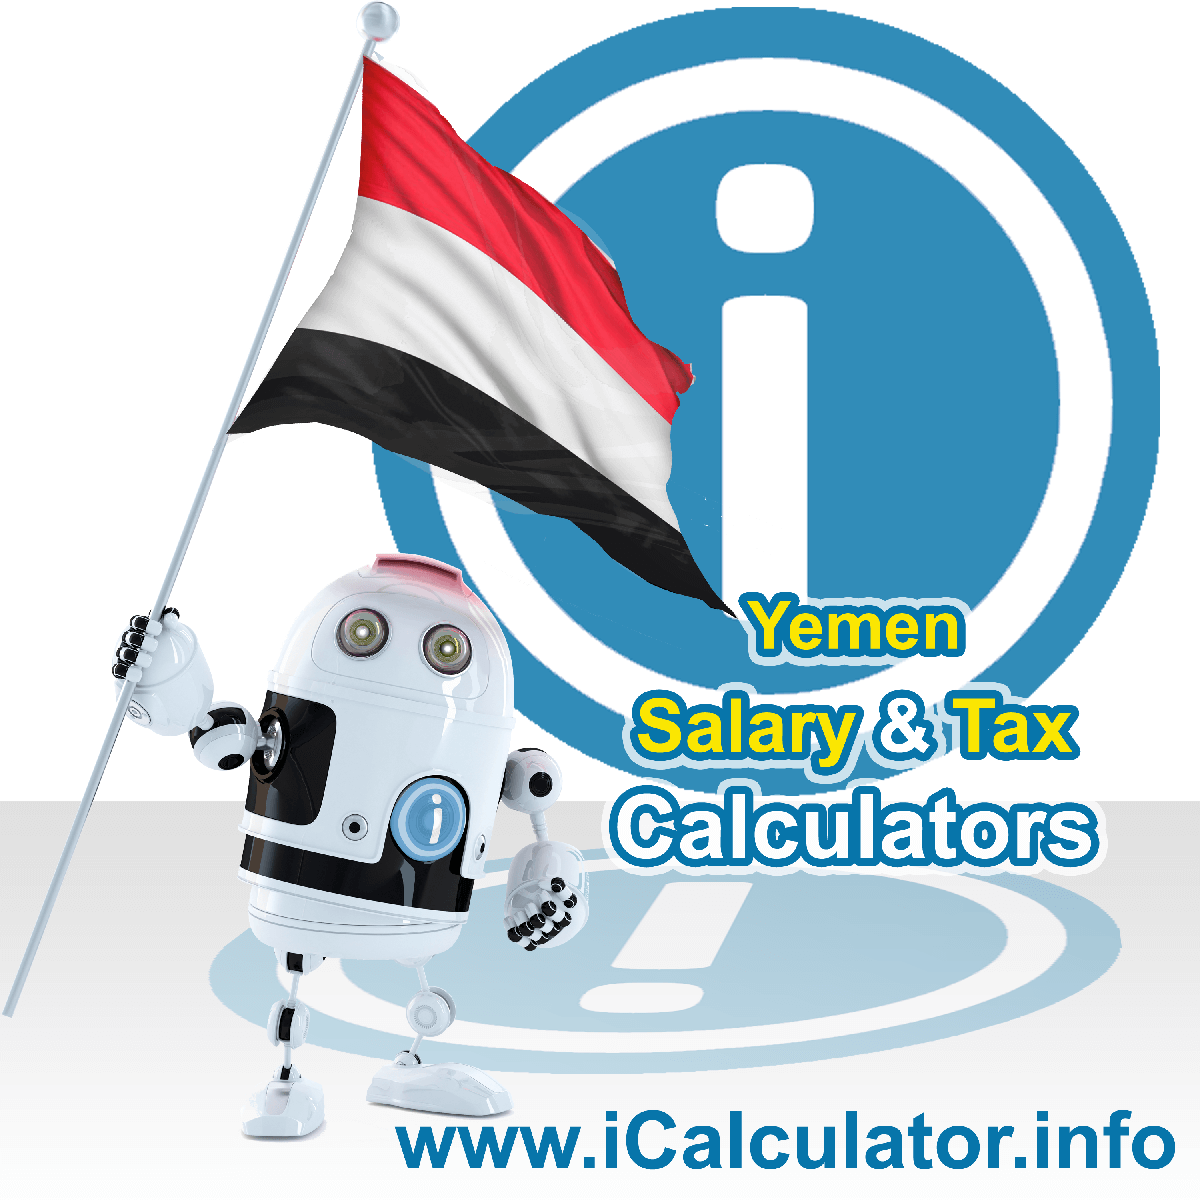 Yemen Wage Calculator. This image shows the Yemen flag and information relating to the tax formula for the Yemen Tax Calculator